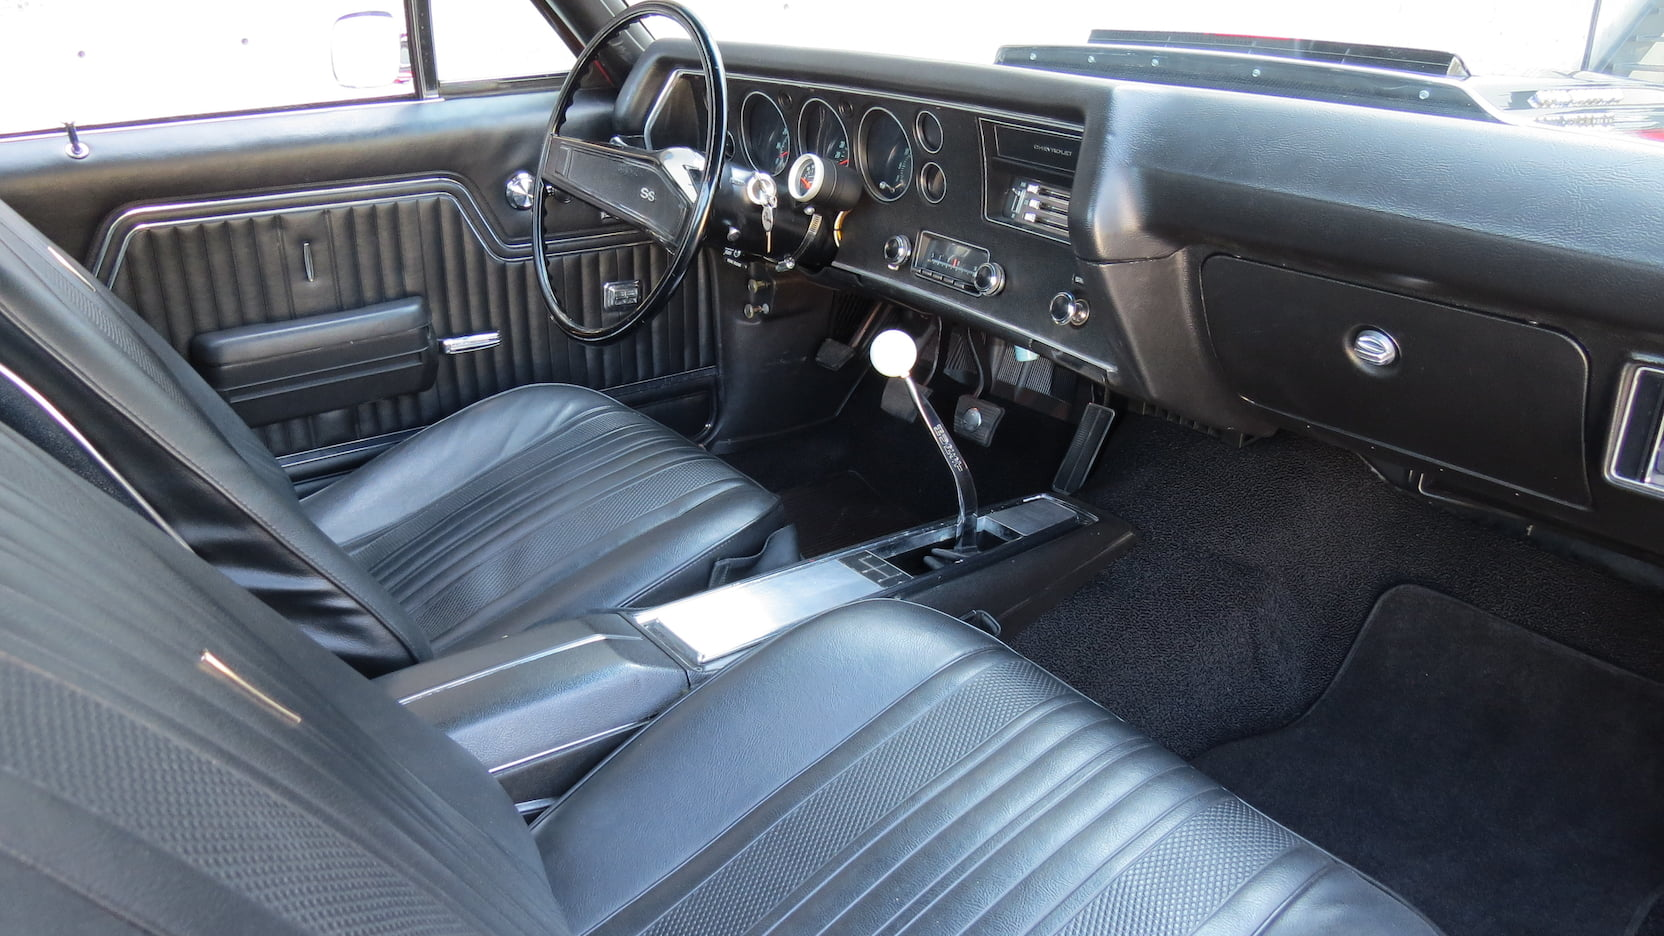 1970 chevy truck seat